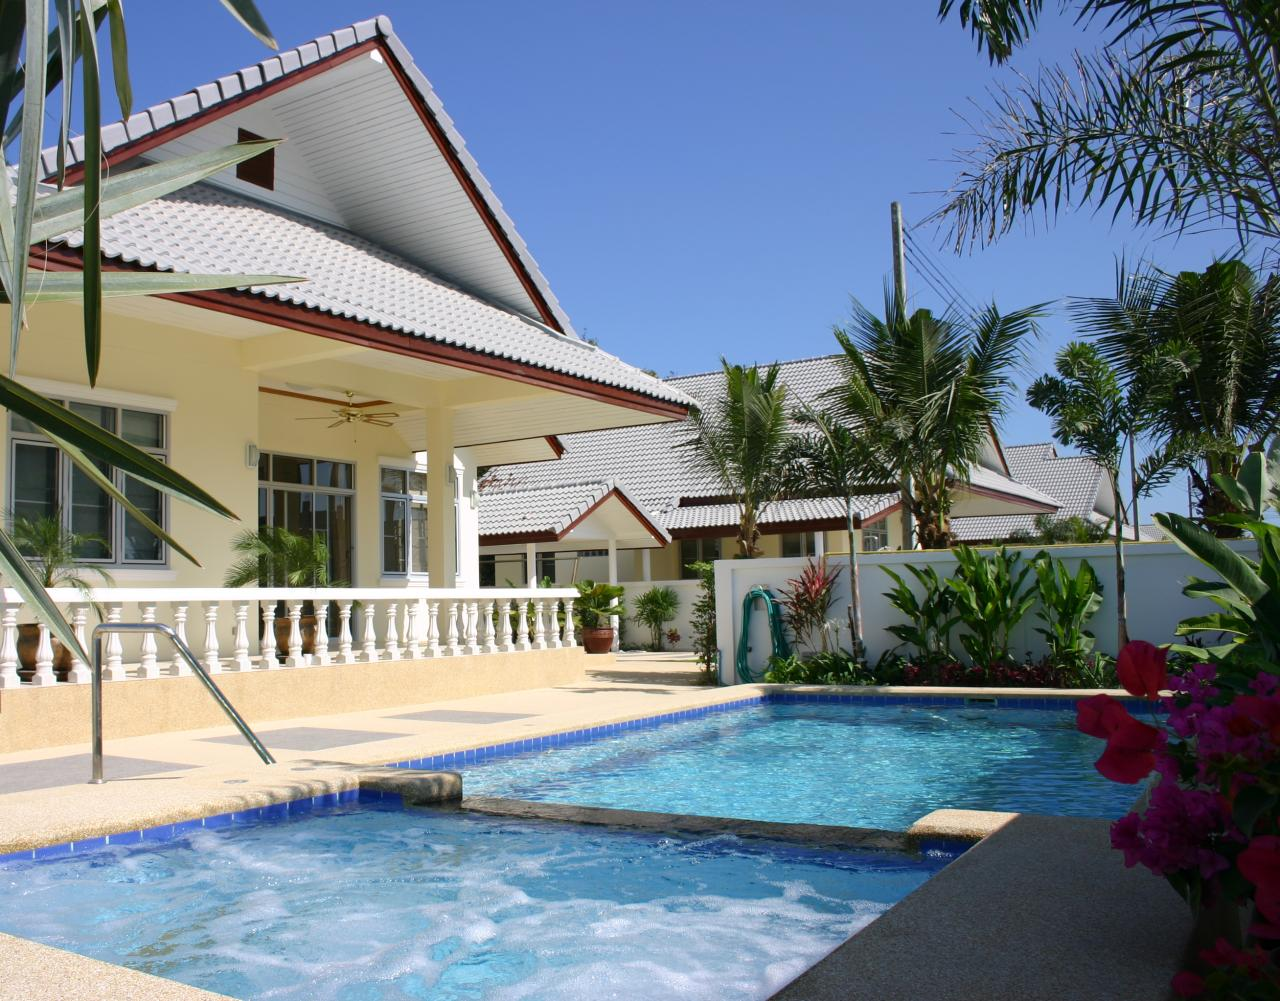 Pool Villa Coconut